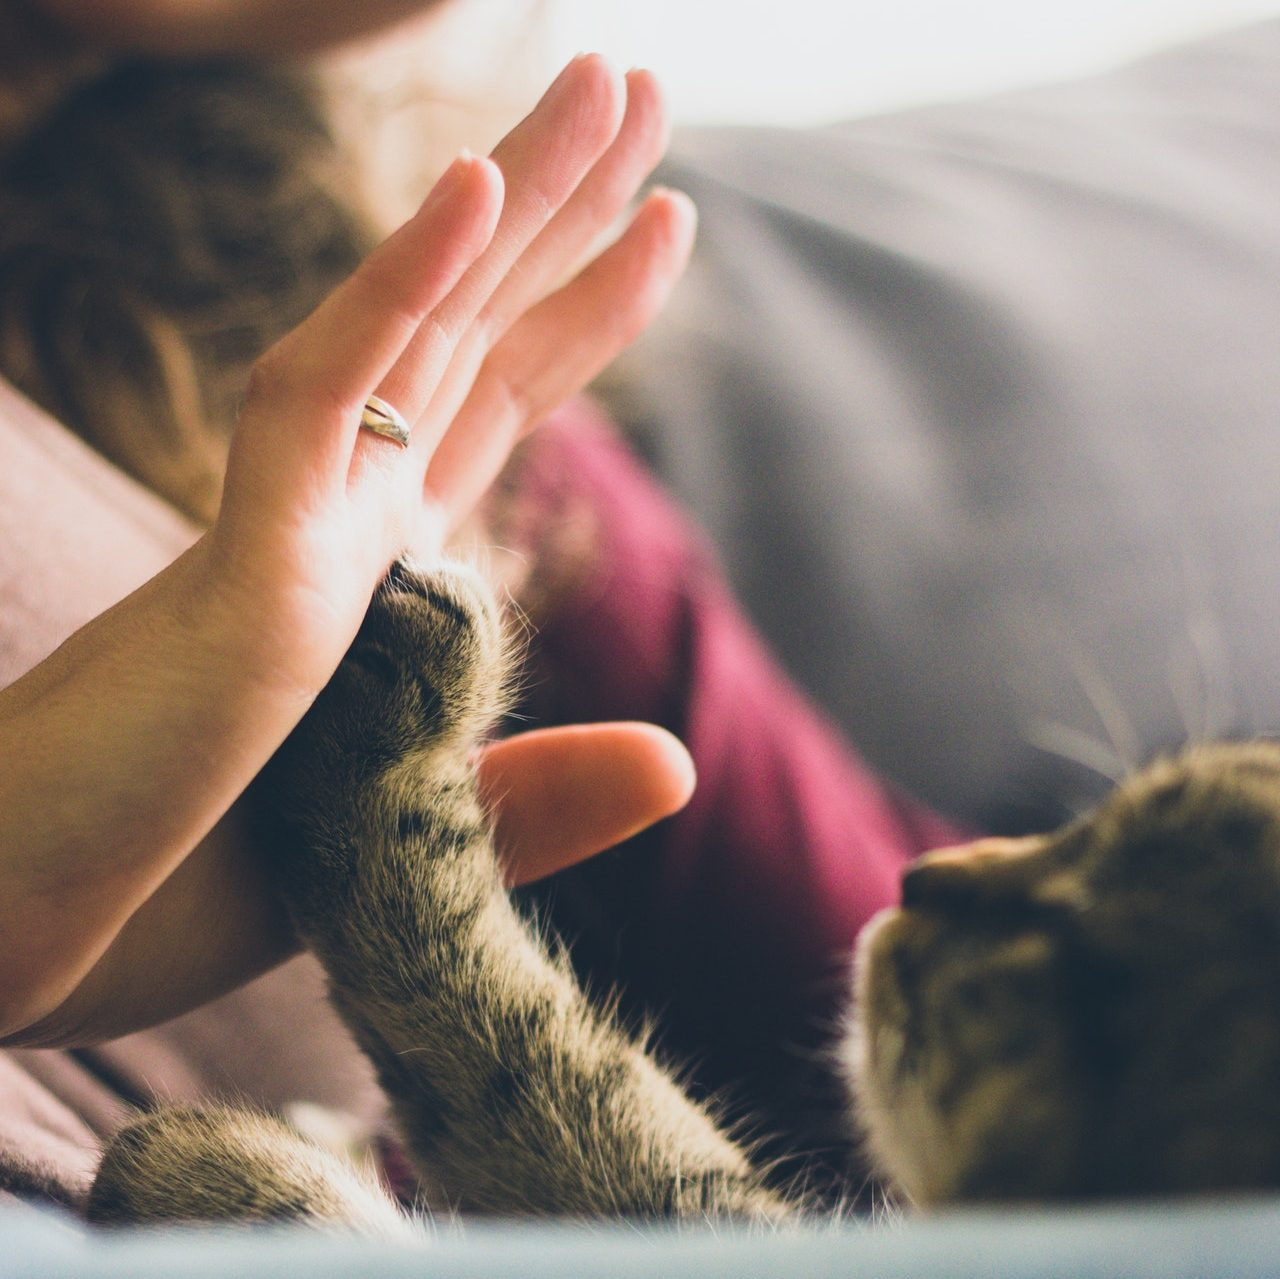 training your kitten to give you a high five